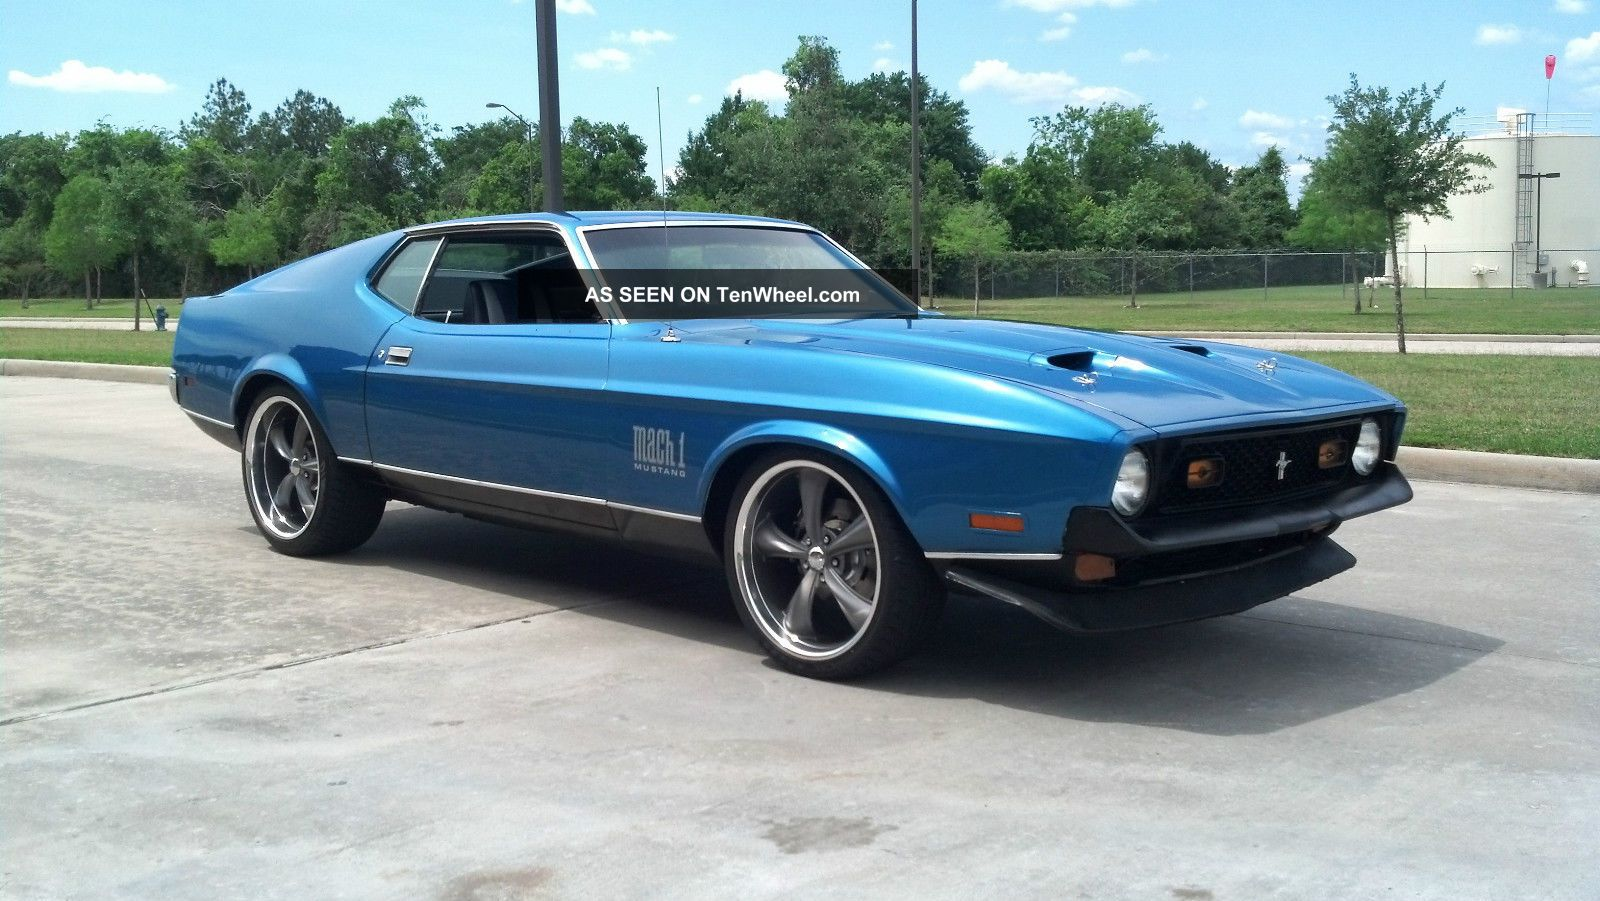 1972 Mach 1 Mustang Pro Touring